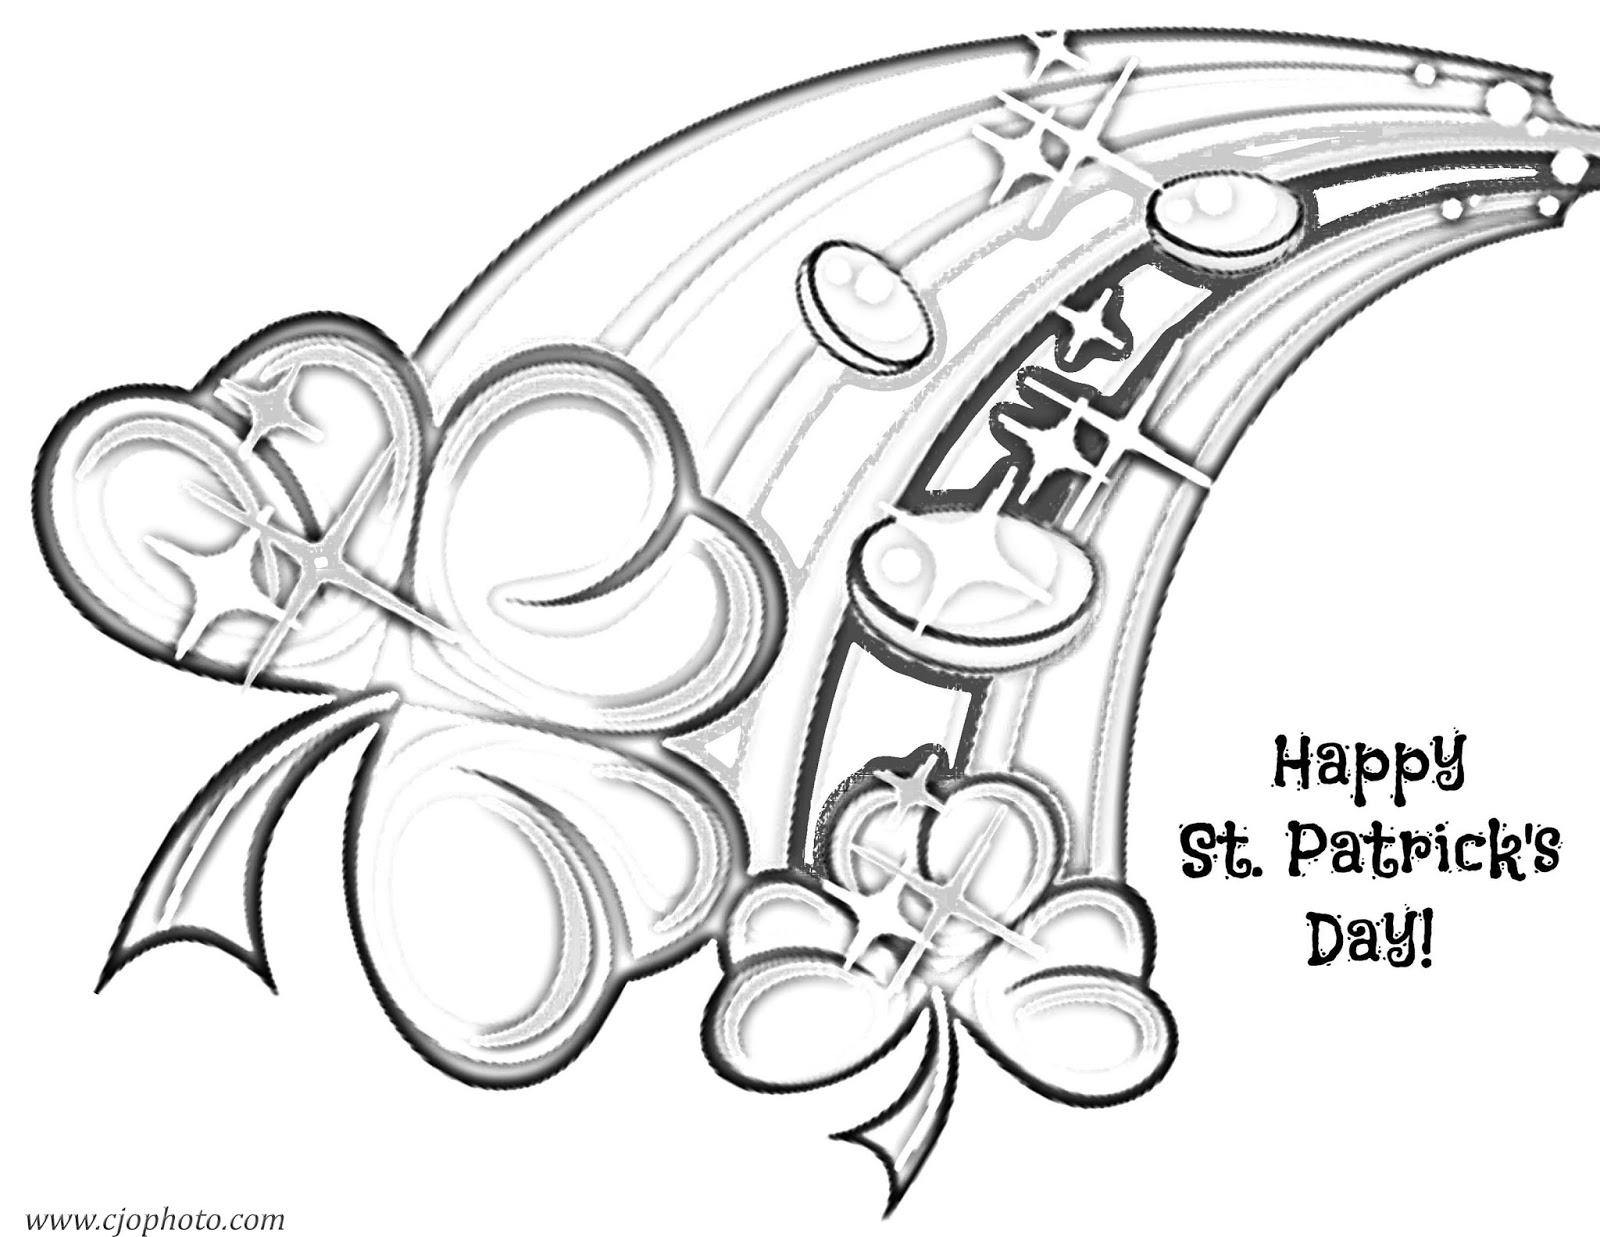 Free Printable St. Patrick's Day Coloring Pages: 4 Designs! | 1237x1600